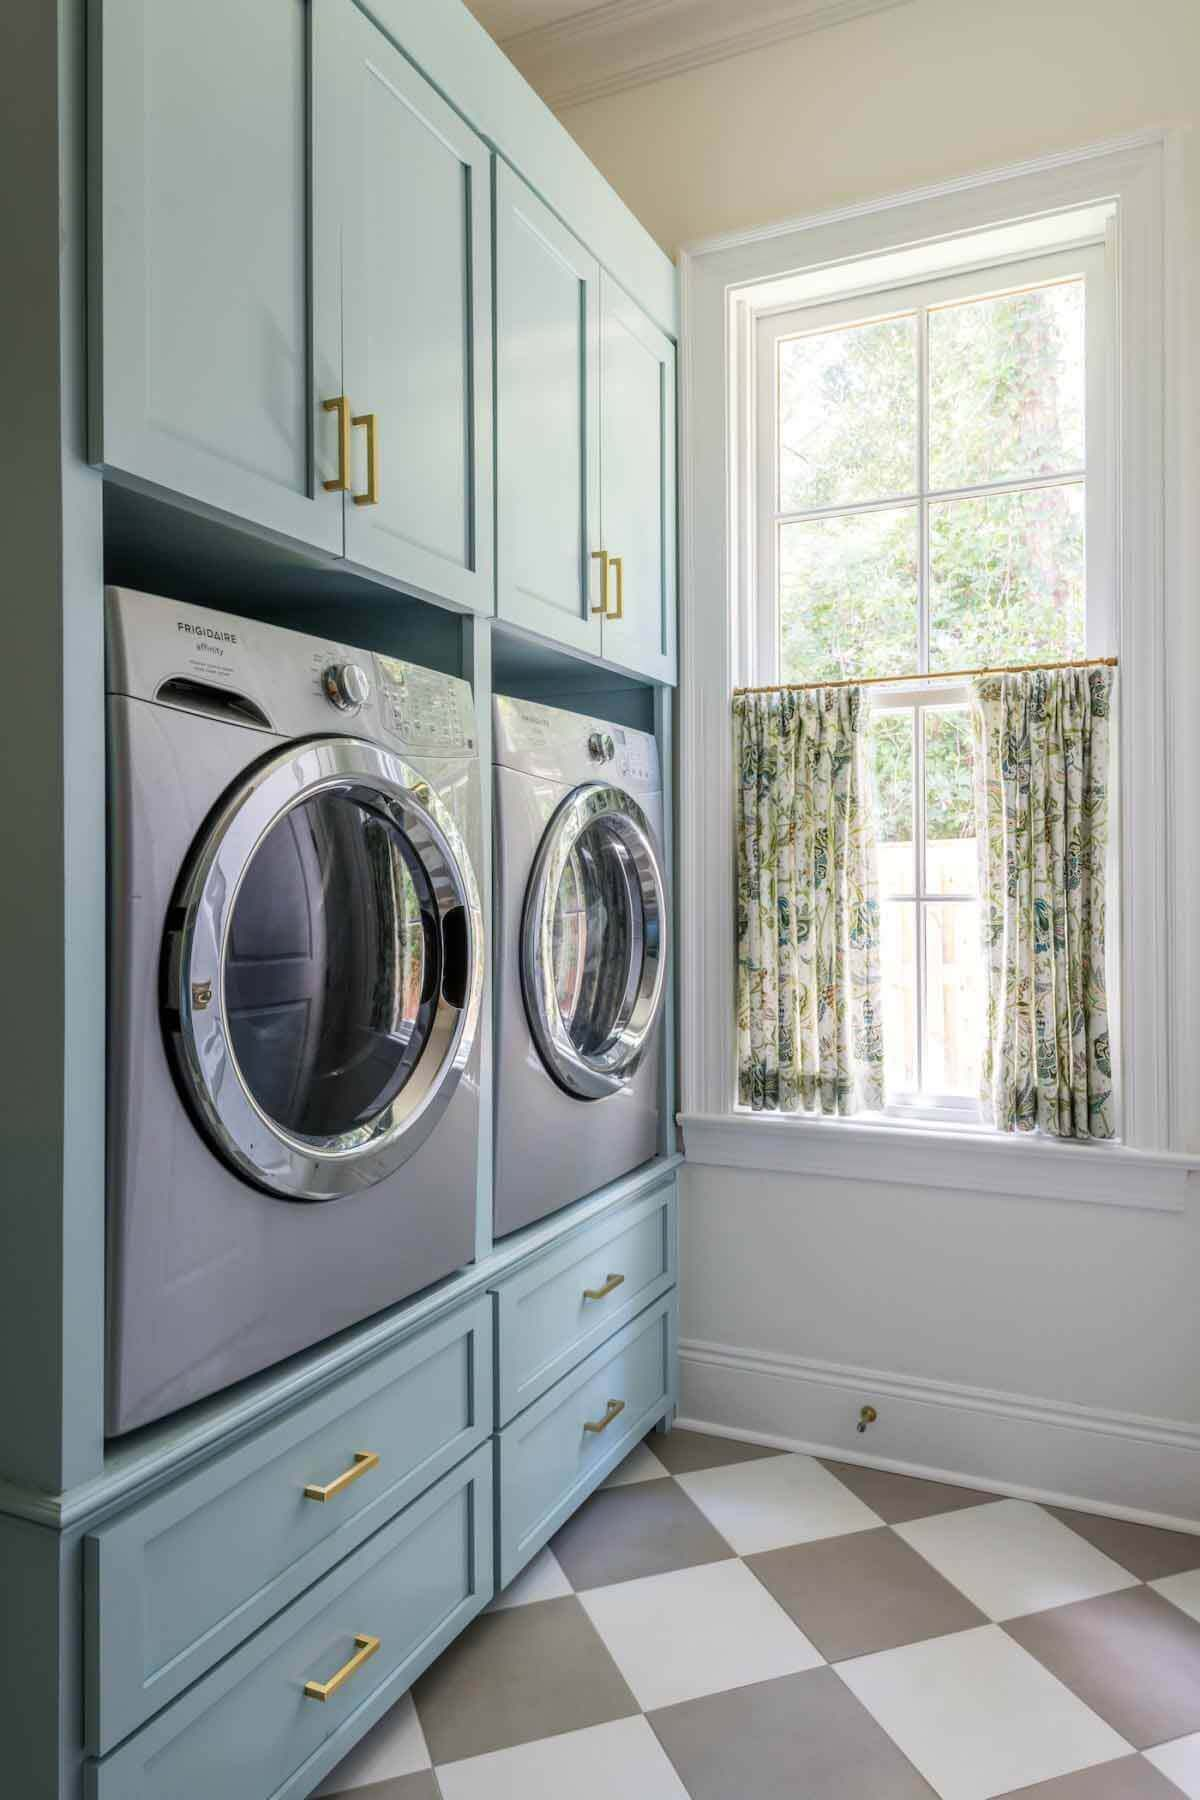 Washing machines and teal cabinets